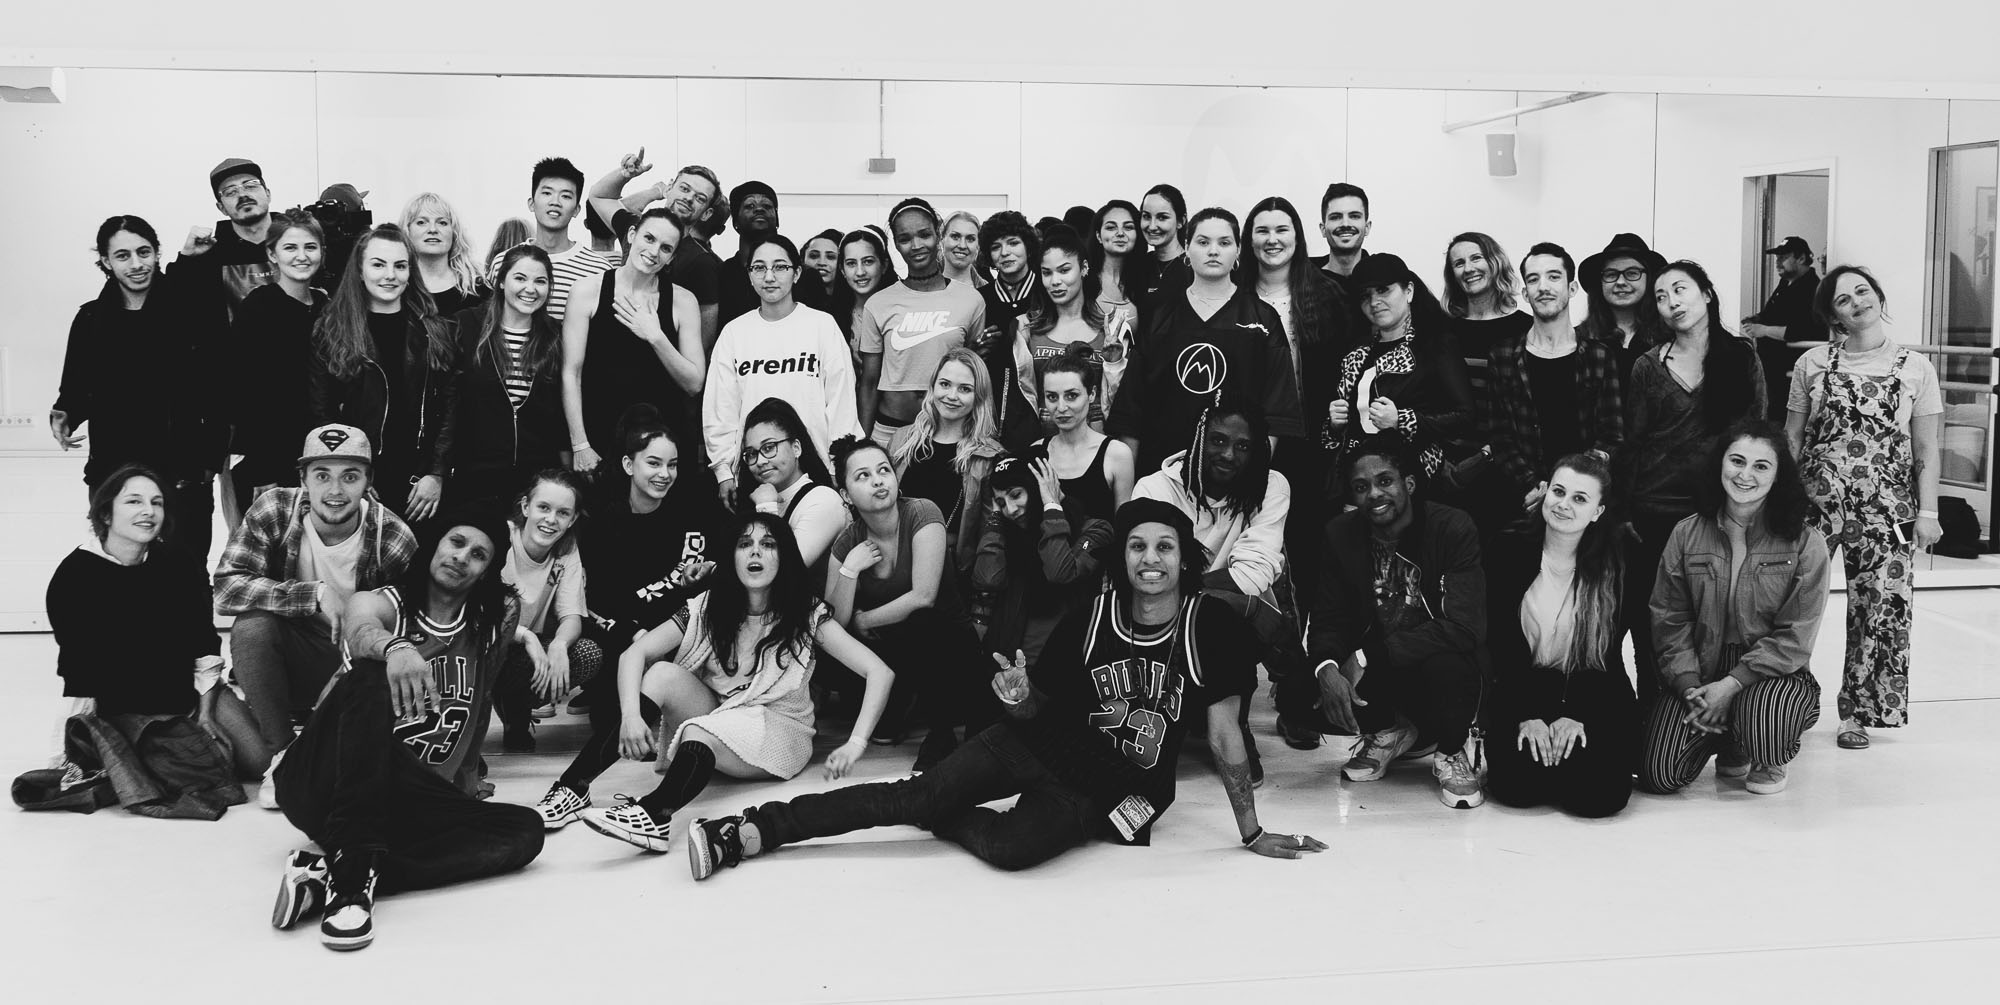 Laurent and Larry of Les Twins with very happy workshop participants at motion*s Tanzstudio Berlin